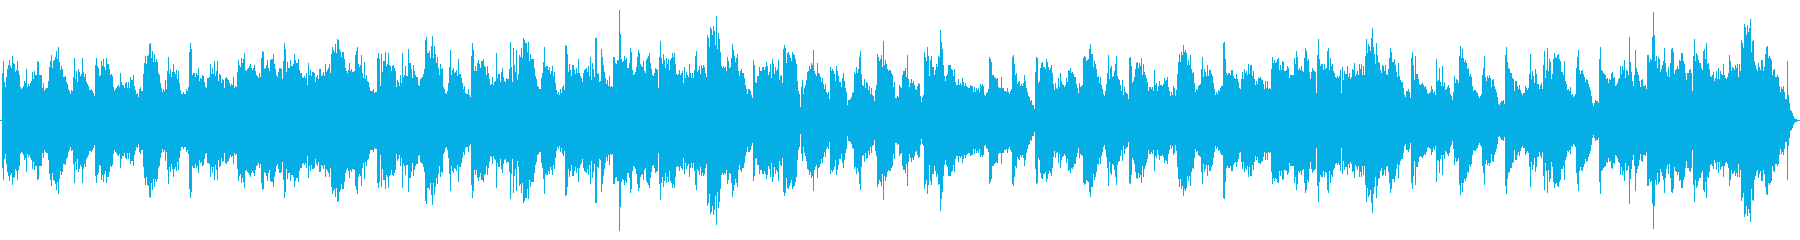 Reminiscence scene using old-fashioned whistle's reproduced waveform